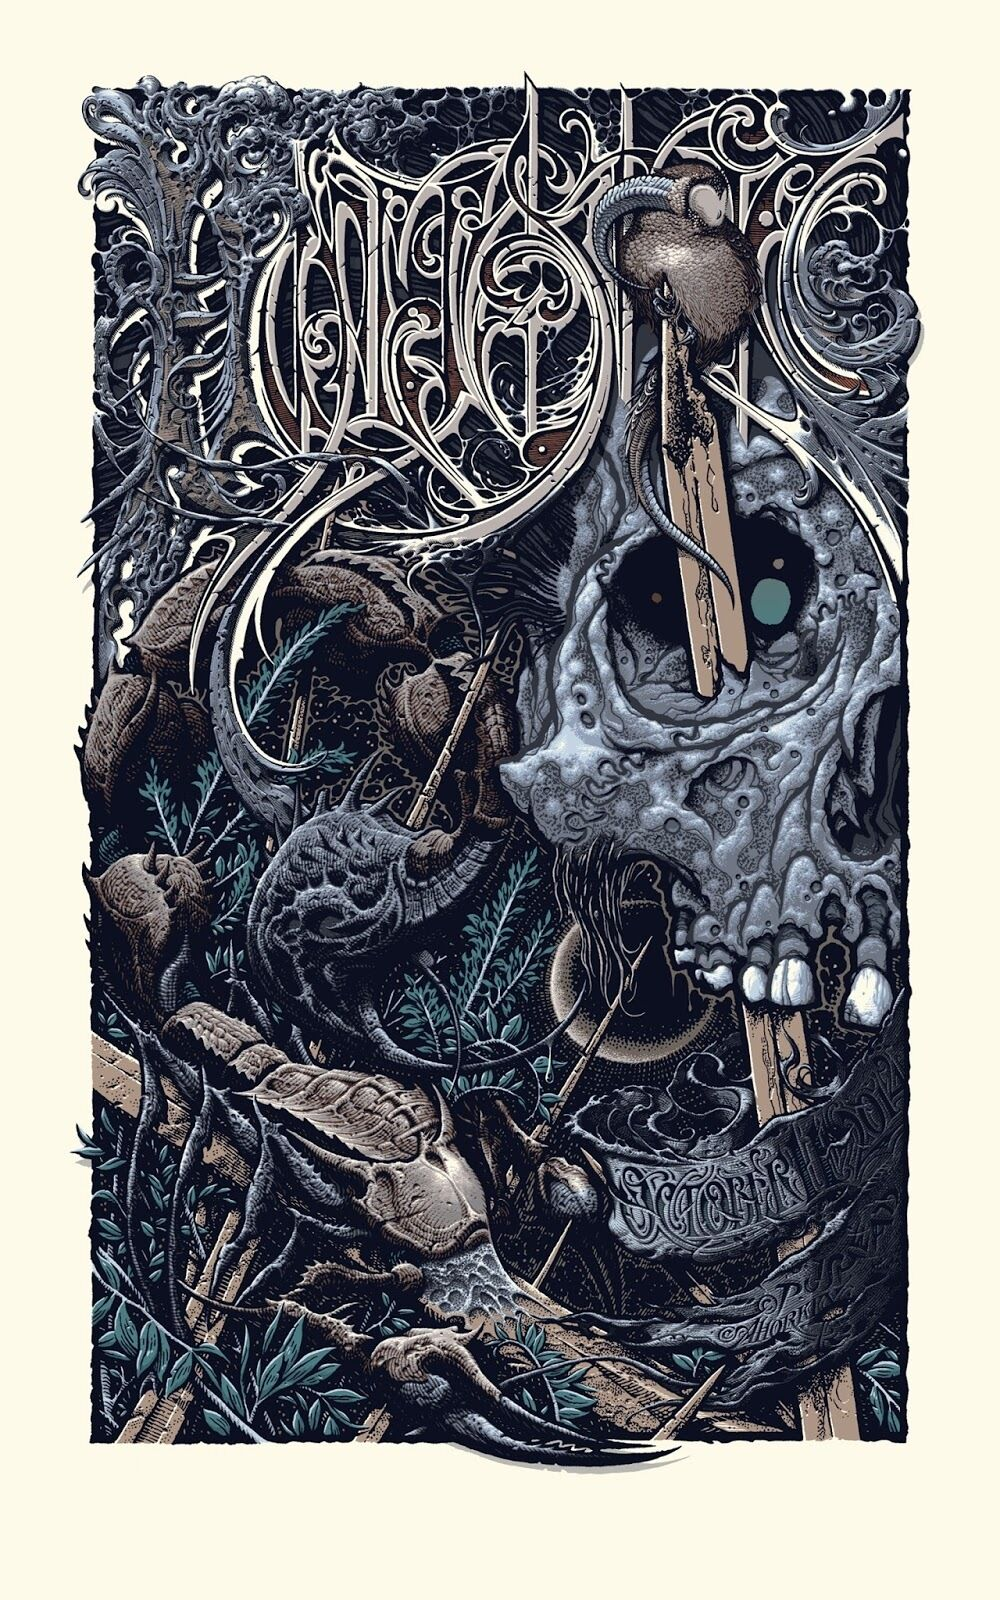 HYPERSTOIC (pus version) by Aaron Horkey and Pushead